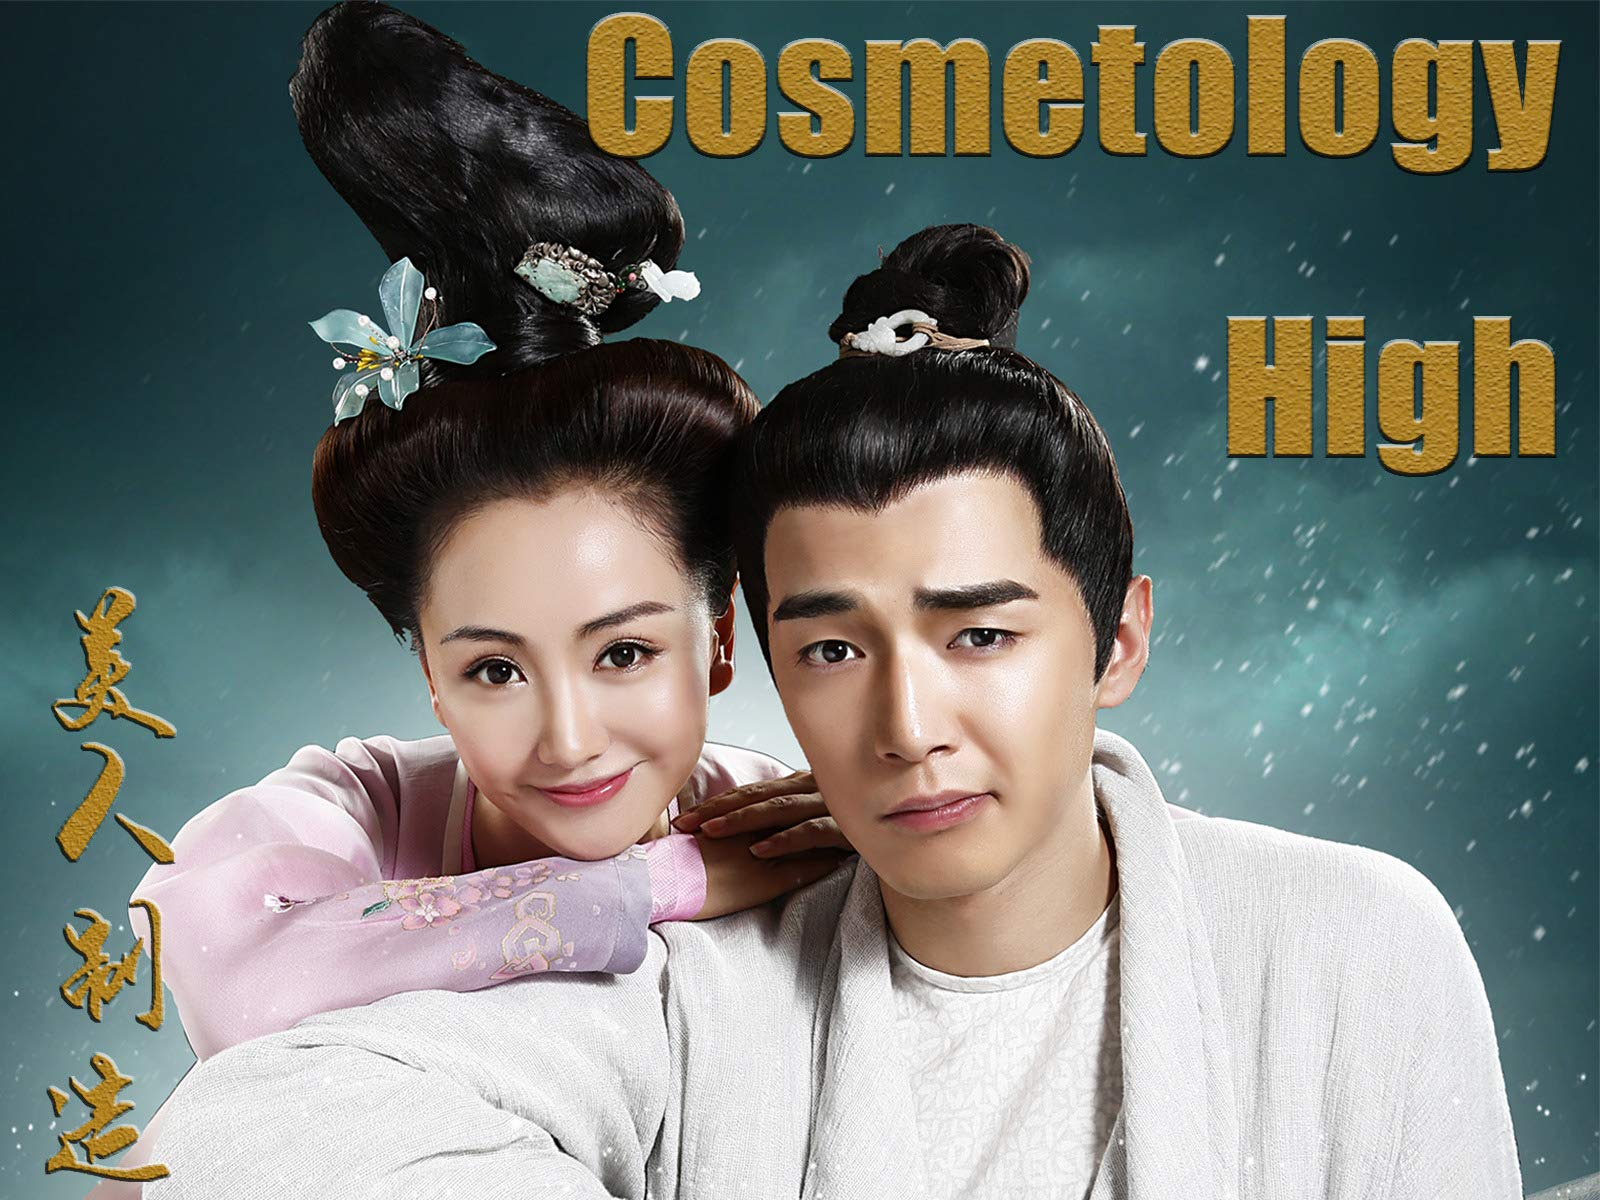 Cosmetology High - Season 1